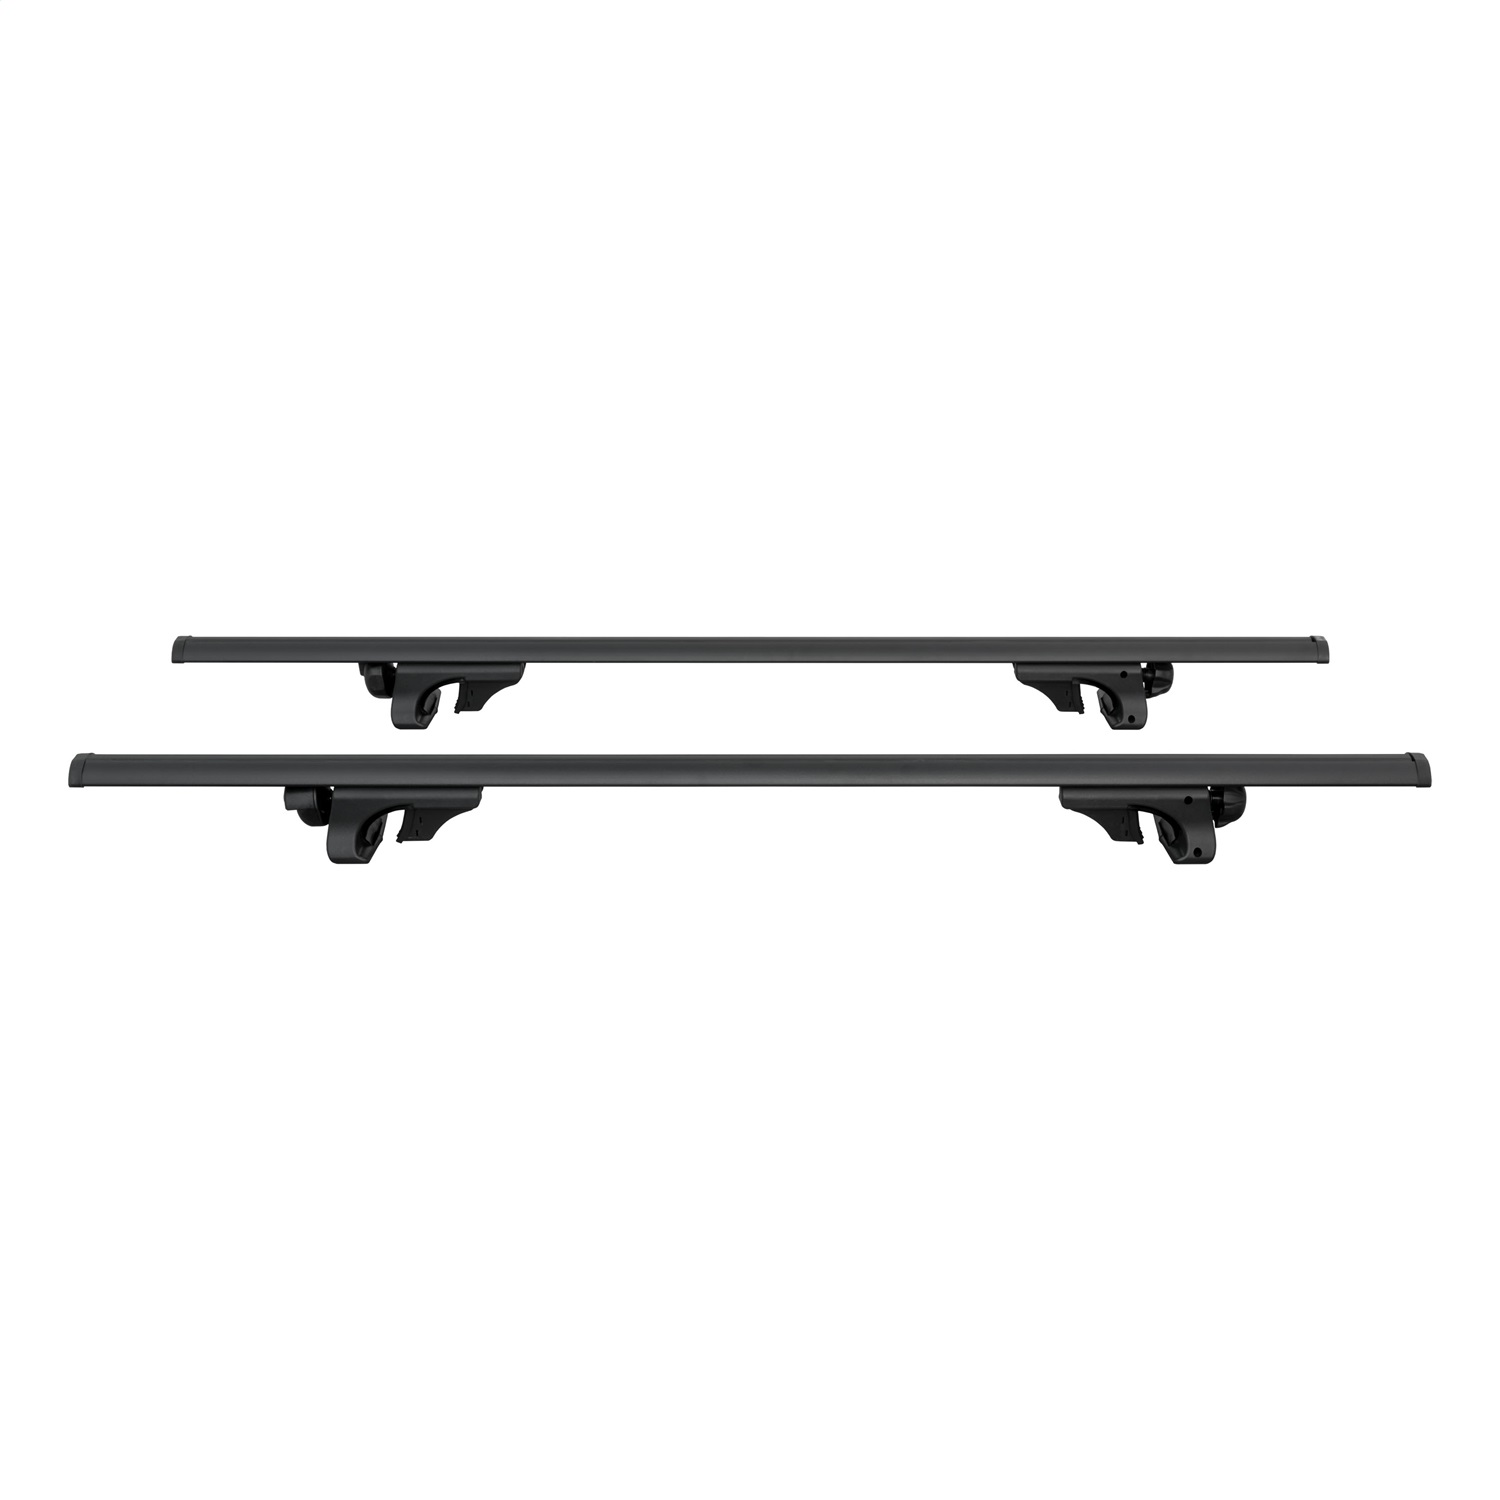 Roof Mounted Cargo Rack, 53-3/8 in., Aluminum, Crossbars